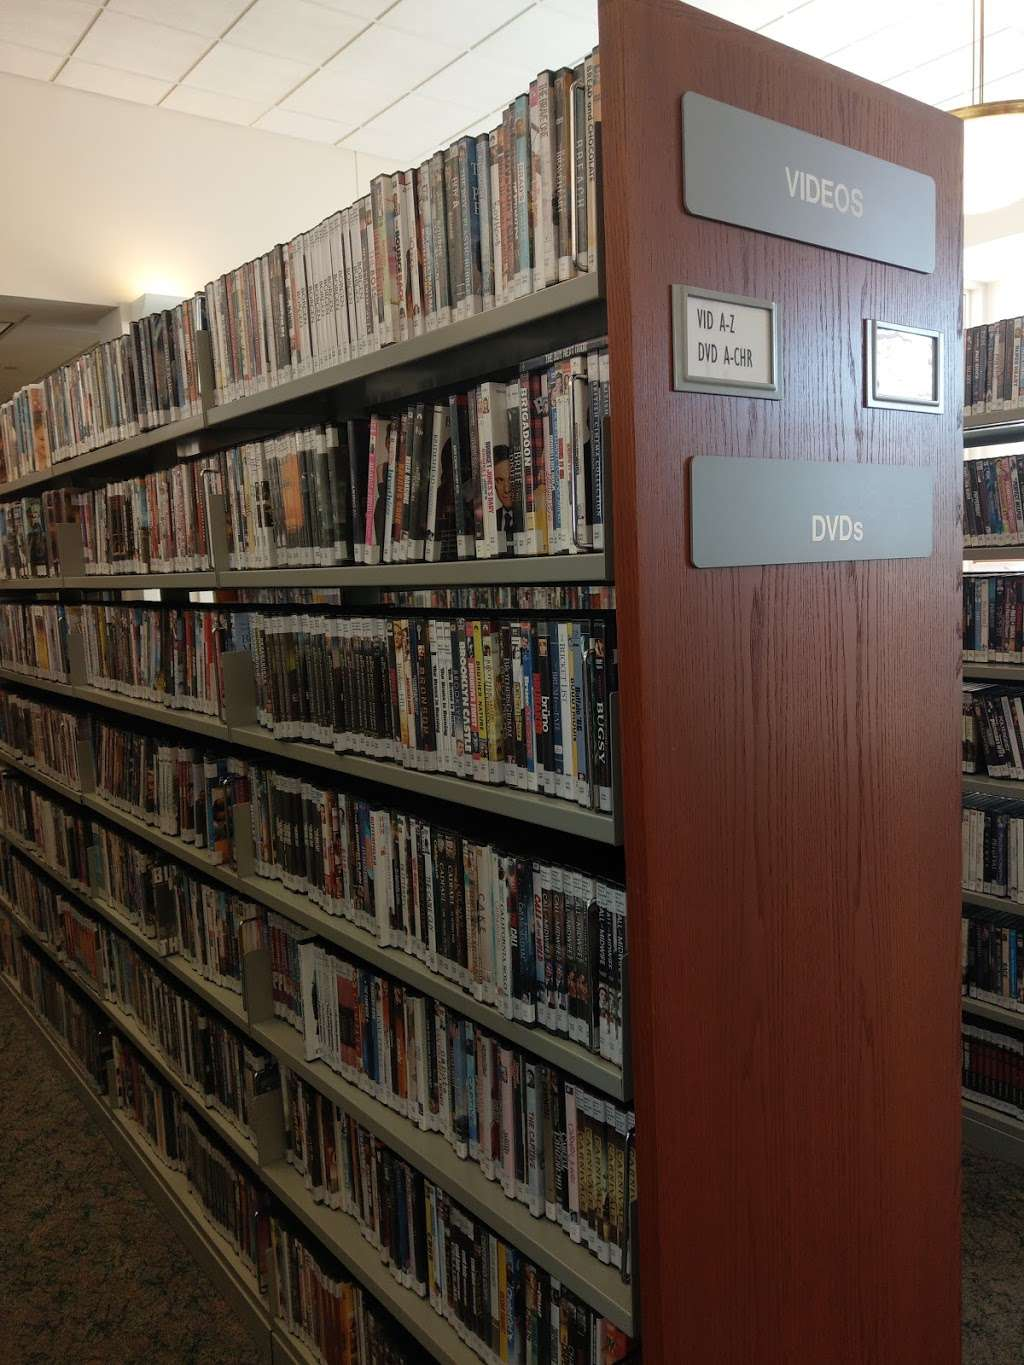 Leach Public Library - library  | Photo 10 of 10 | Address: 276 Mammoth Rd, Londonderry, NH 03053, USA | Phone: (603) 432-1132